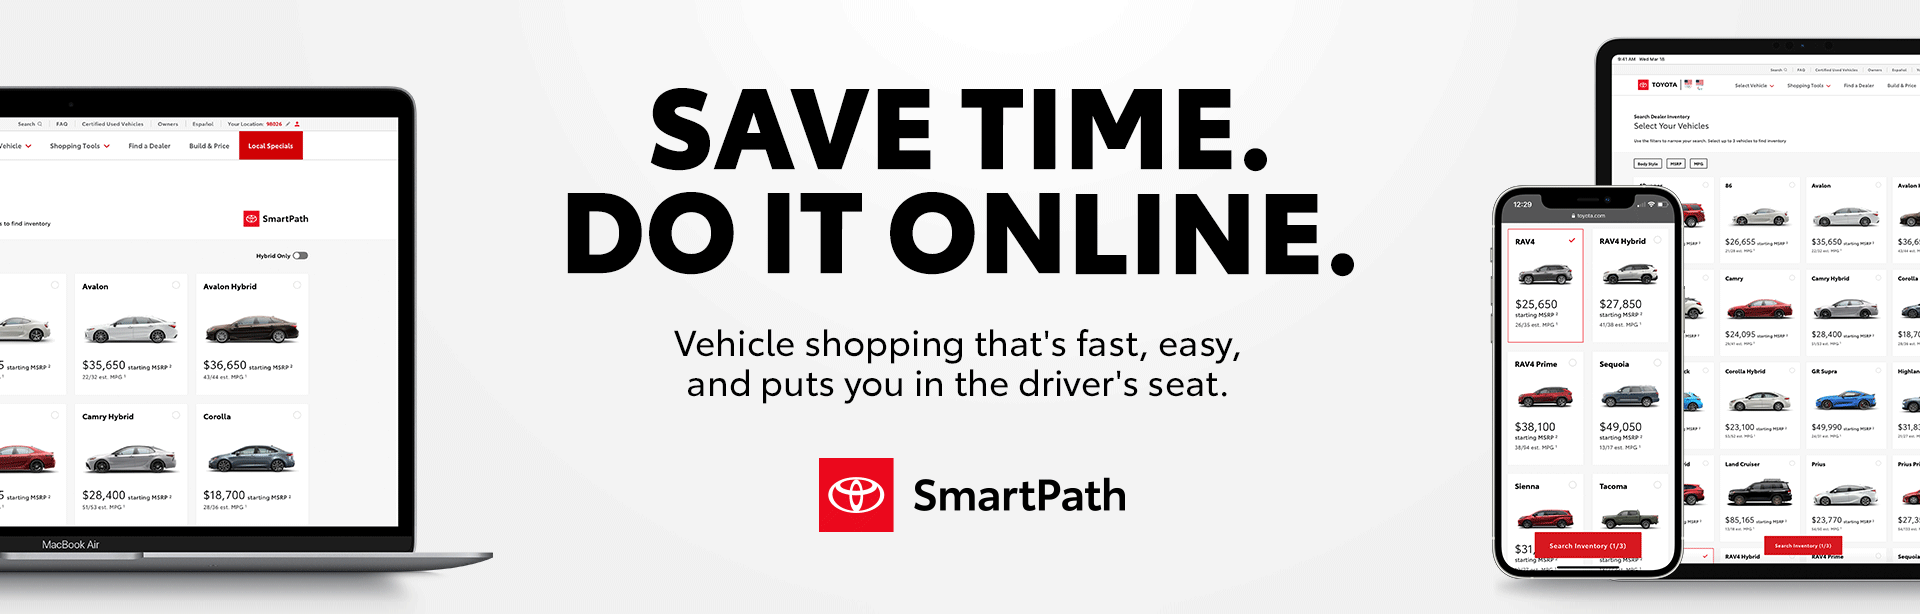 SmartPath - Save Time by Doing it Online